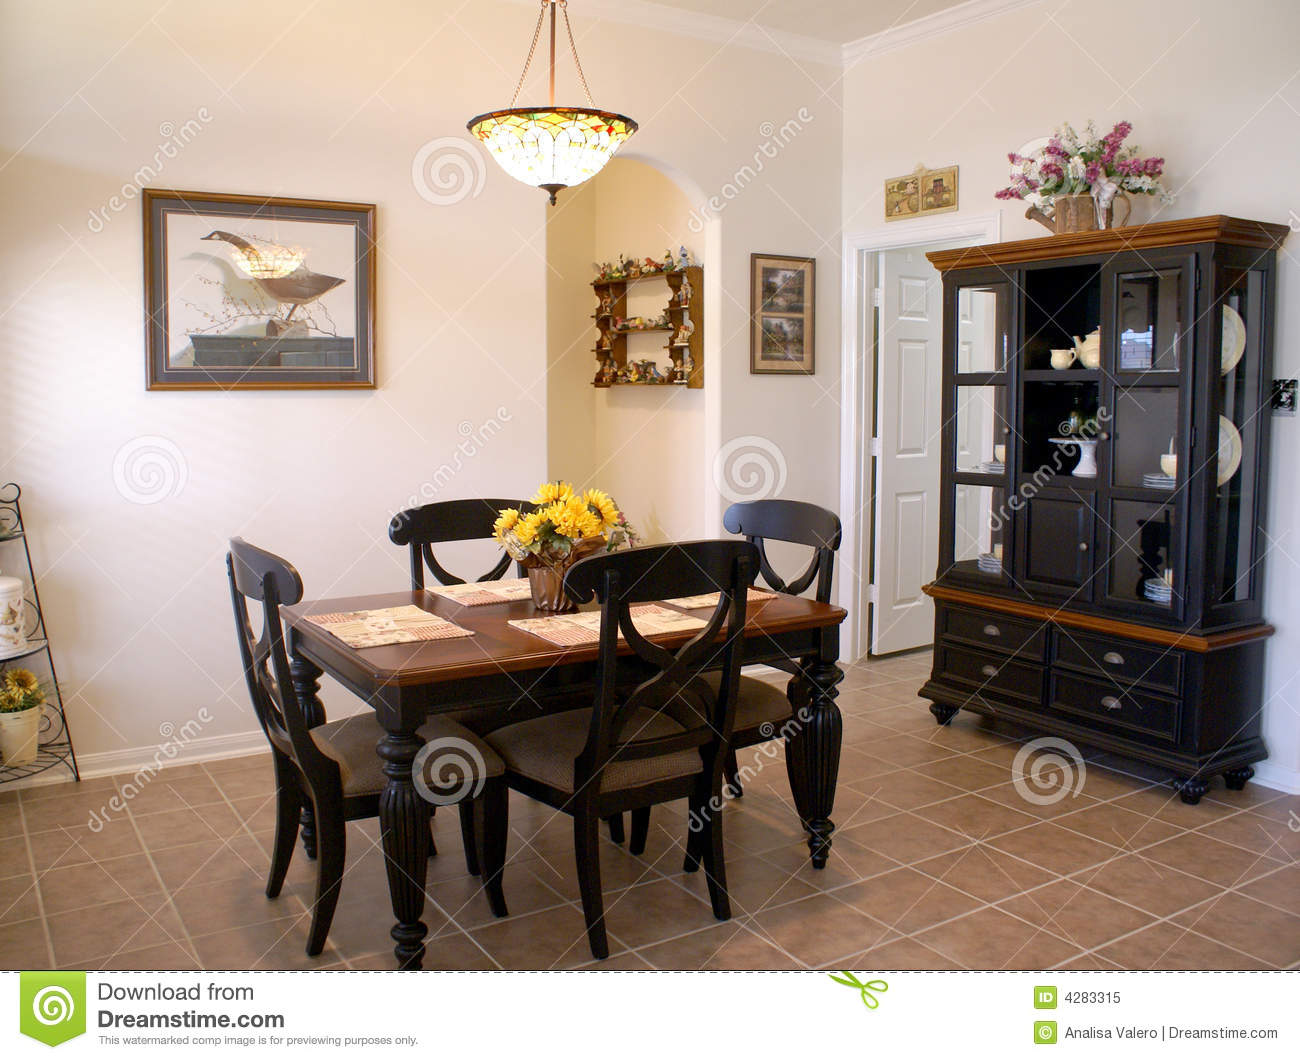 Average middle class dining room country style tile floor black